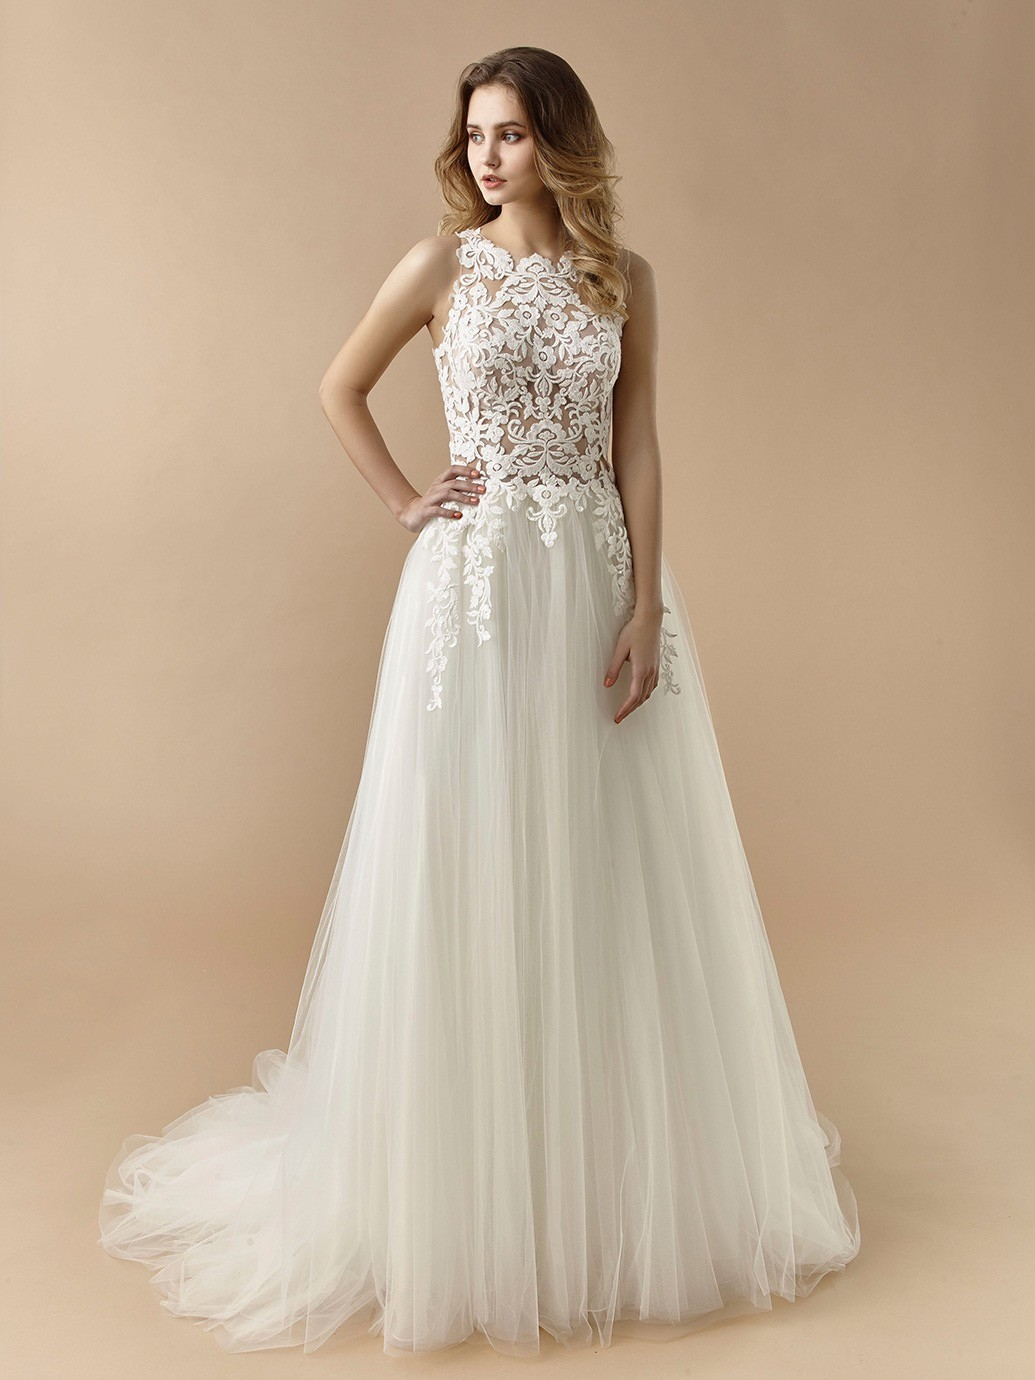 Brautkleid Modell BT20-10 aus der Beautiful Bridal Kollektion 2020